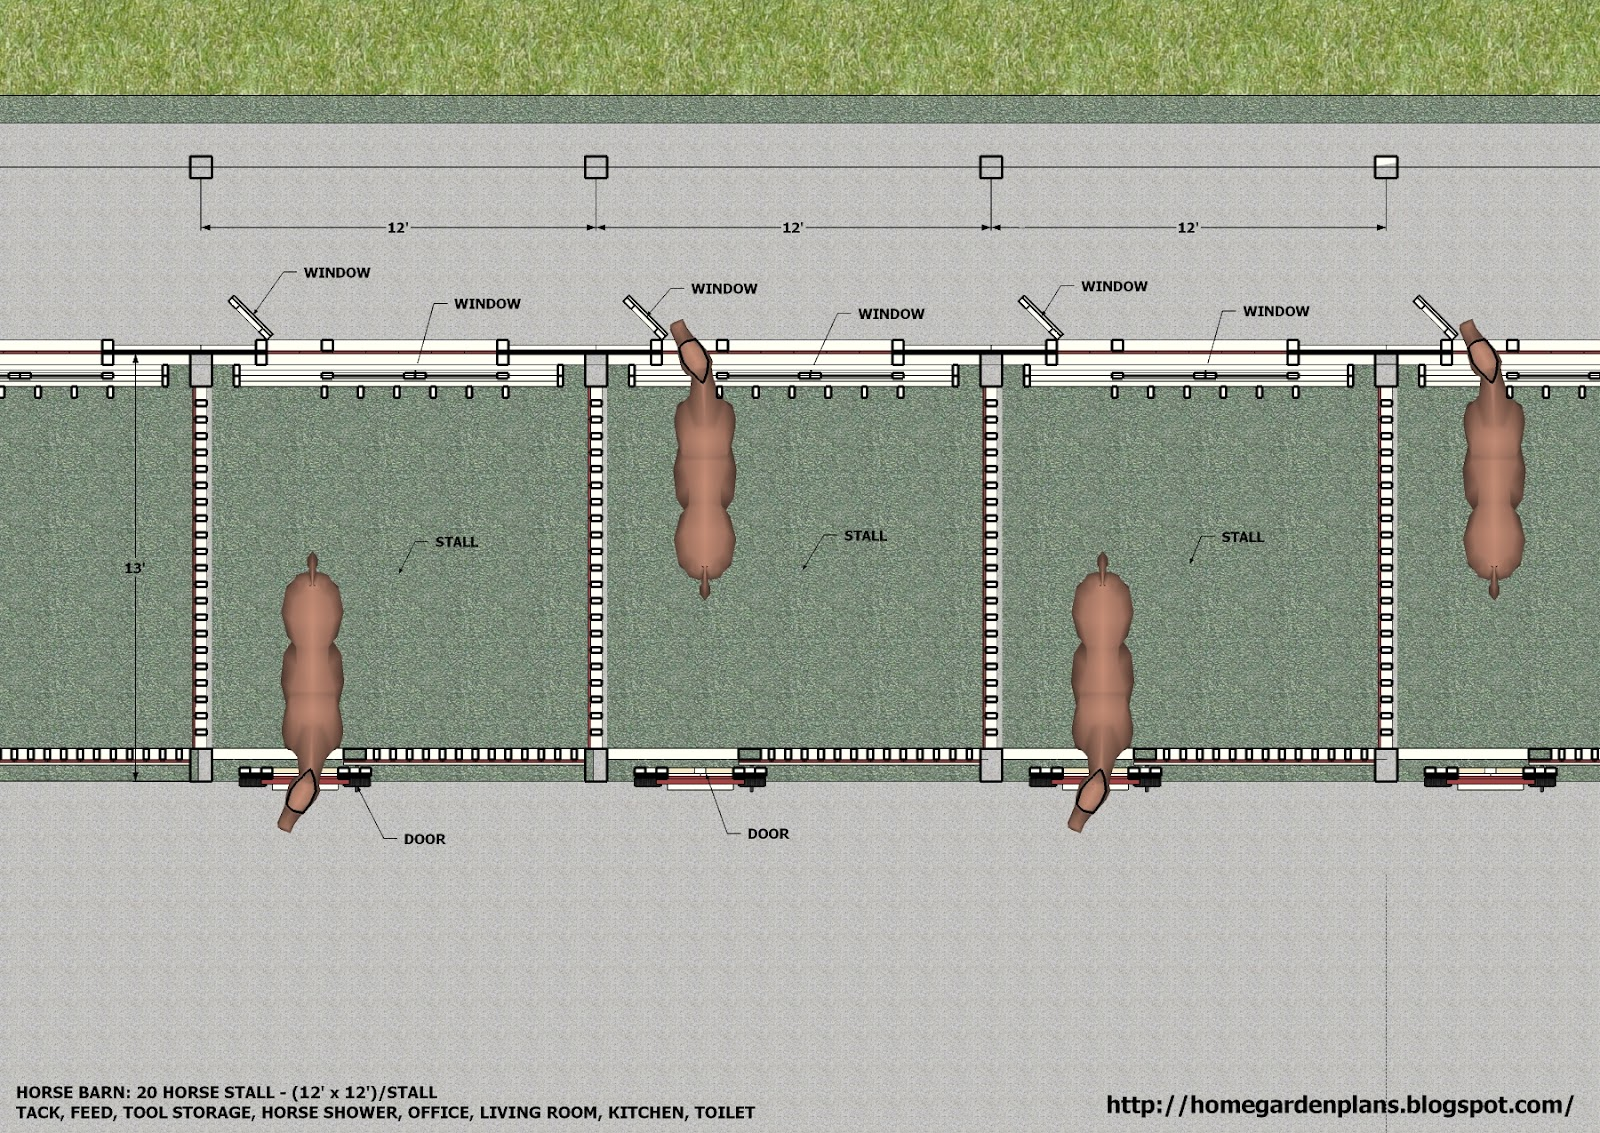 20 Stall Horse Barn Plans http://www.homegardendesignplan.com/2011/07/large-horse-barn-for-20-horse-stall.html